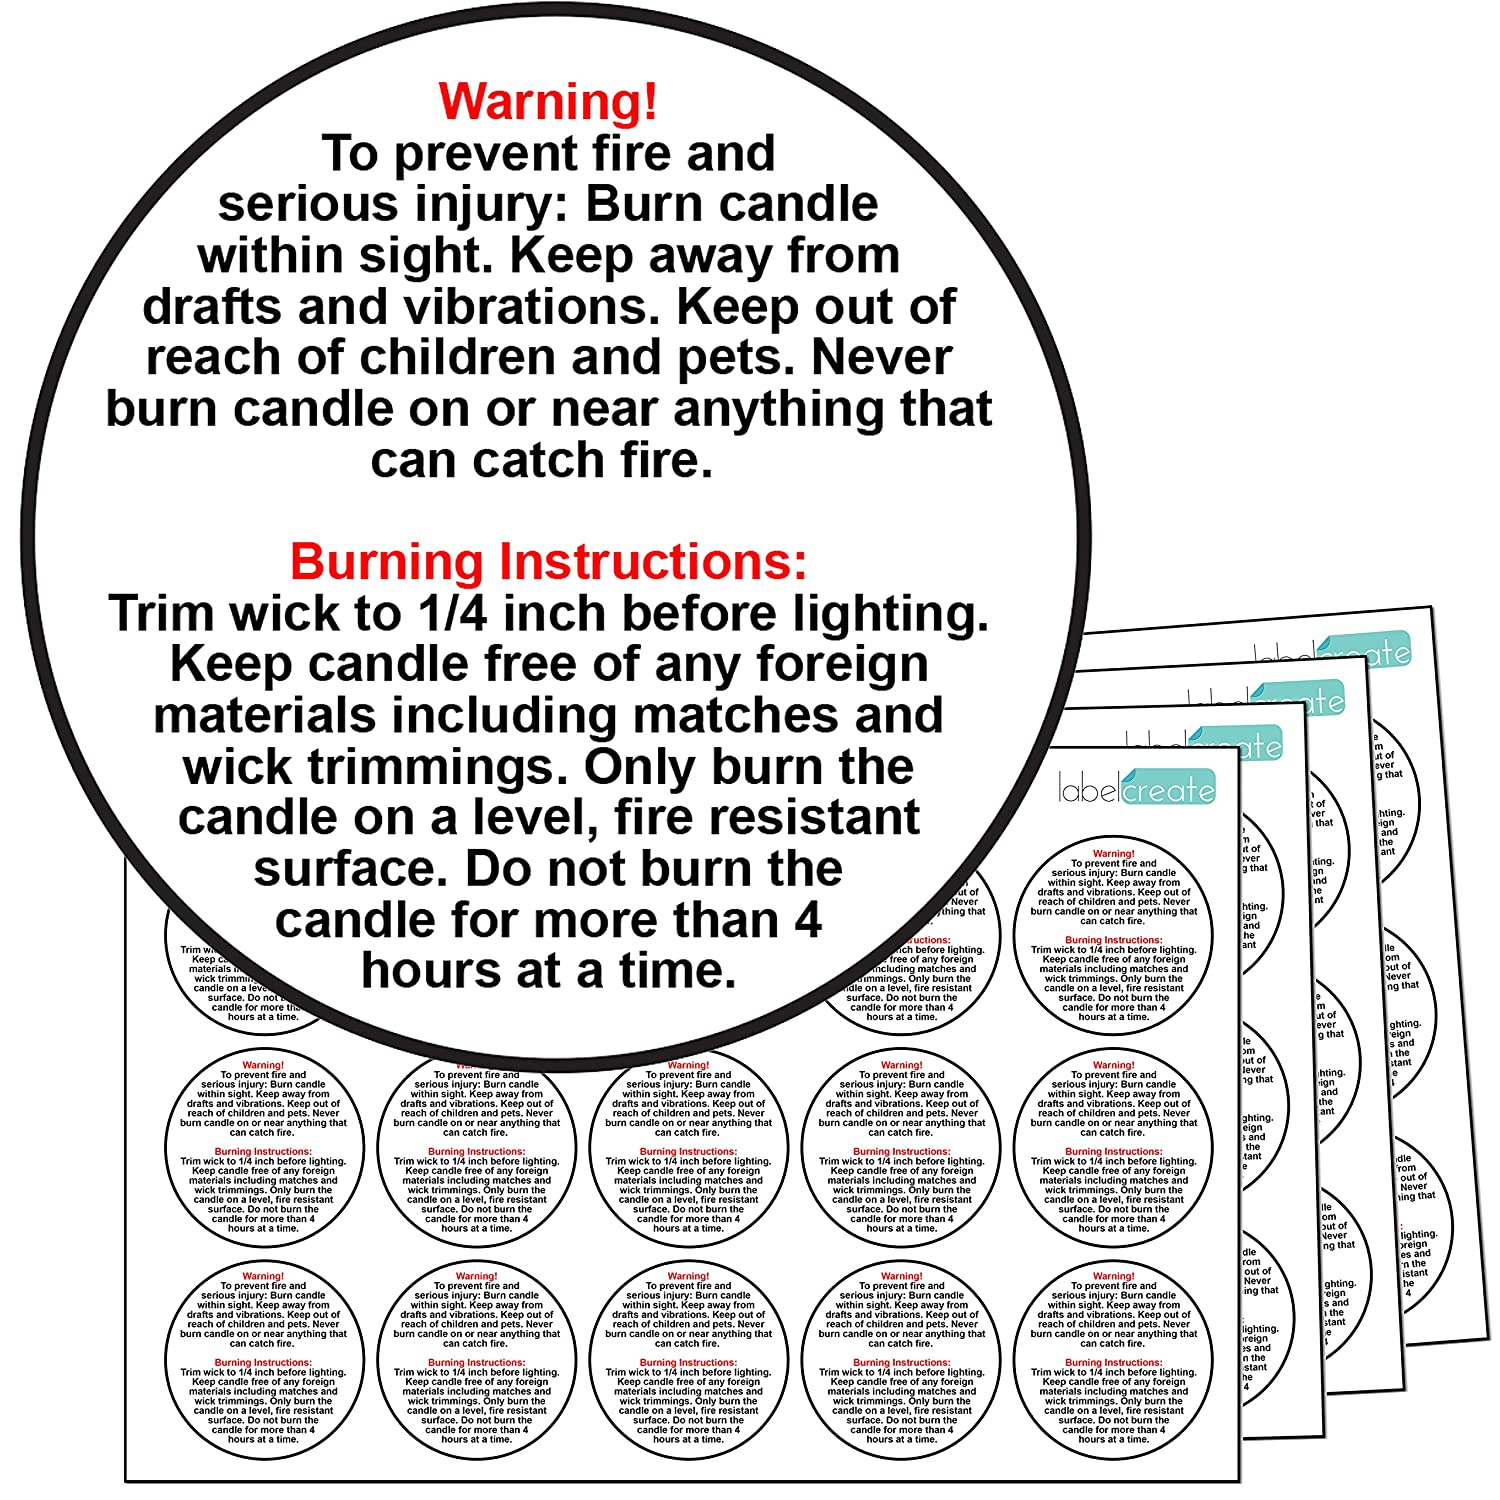 (Transparent) - 60x GLOSSY PLASTIC Candle Warning Labels. 100% Waterproof Stickers. Candle Safety Labels (Transparent) B00TFGDXKE 透明